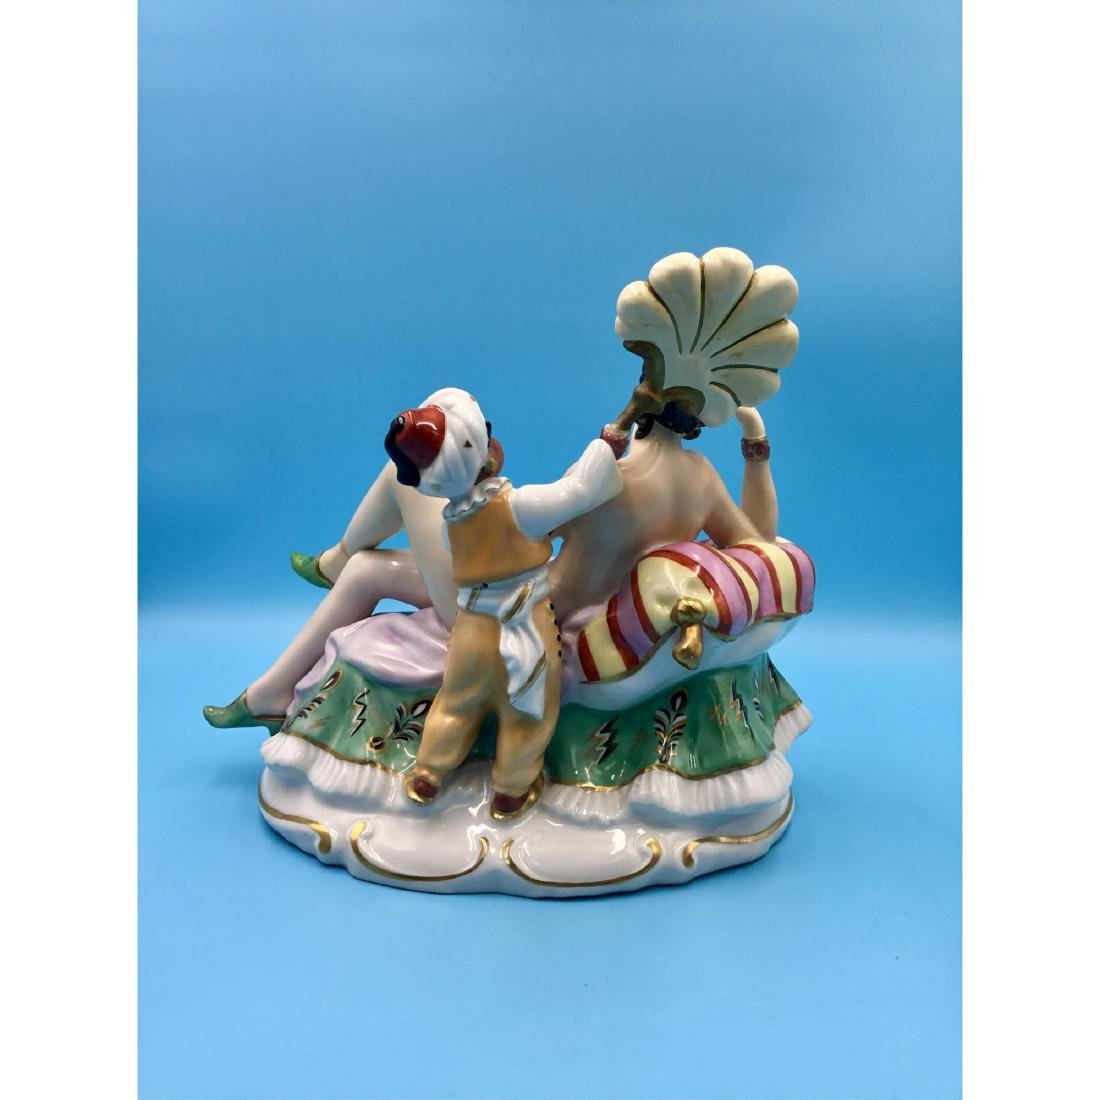 LARGE PORCELAIN GROUP FIGURINE NUDE WITH BLACKMOOR - 3